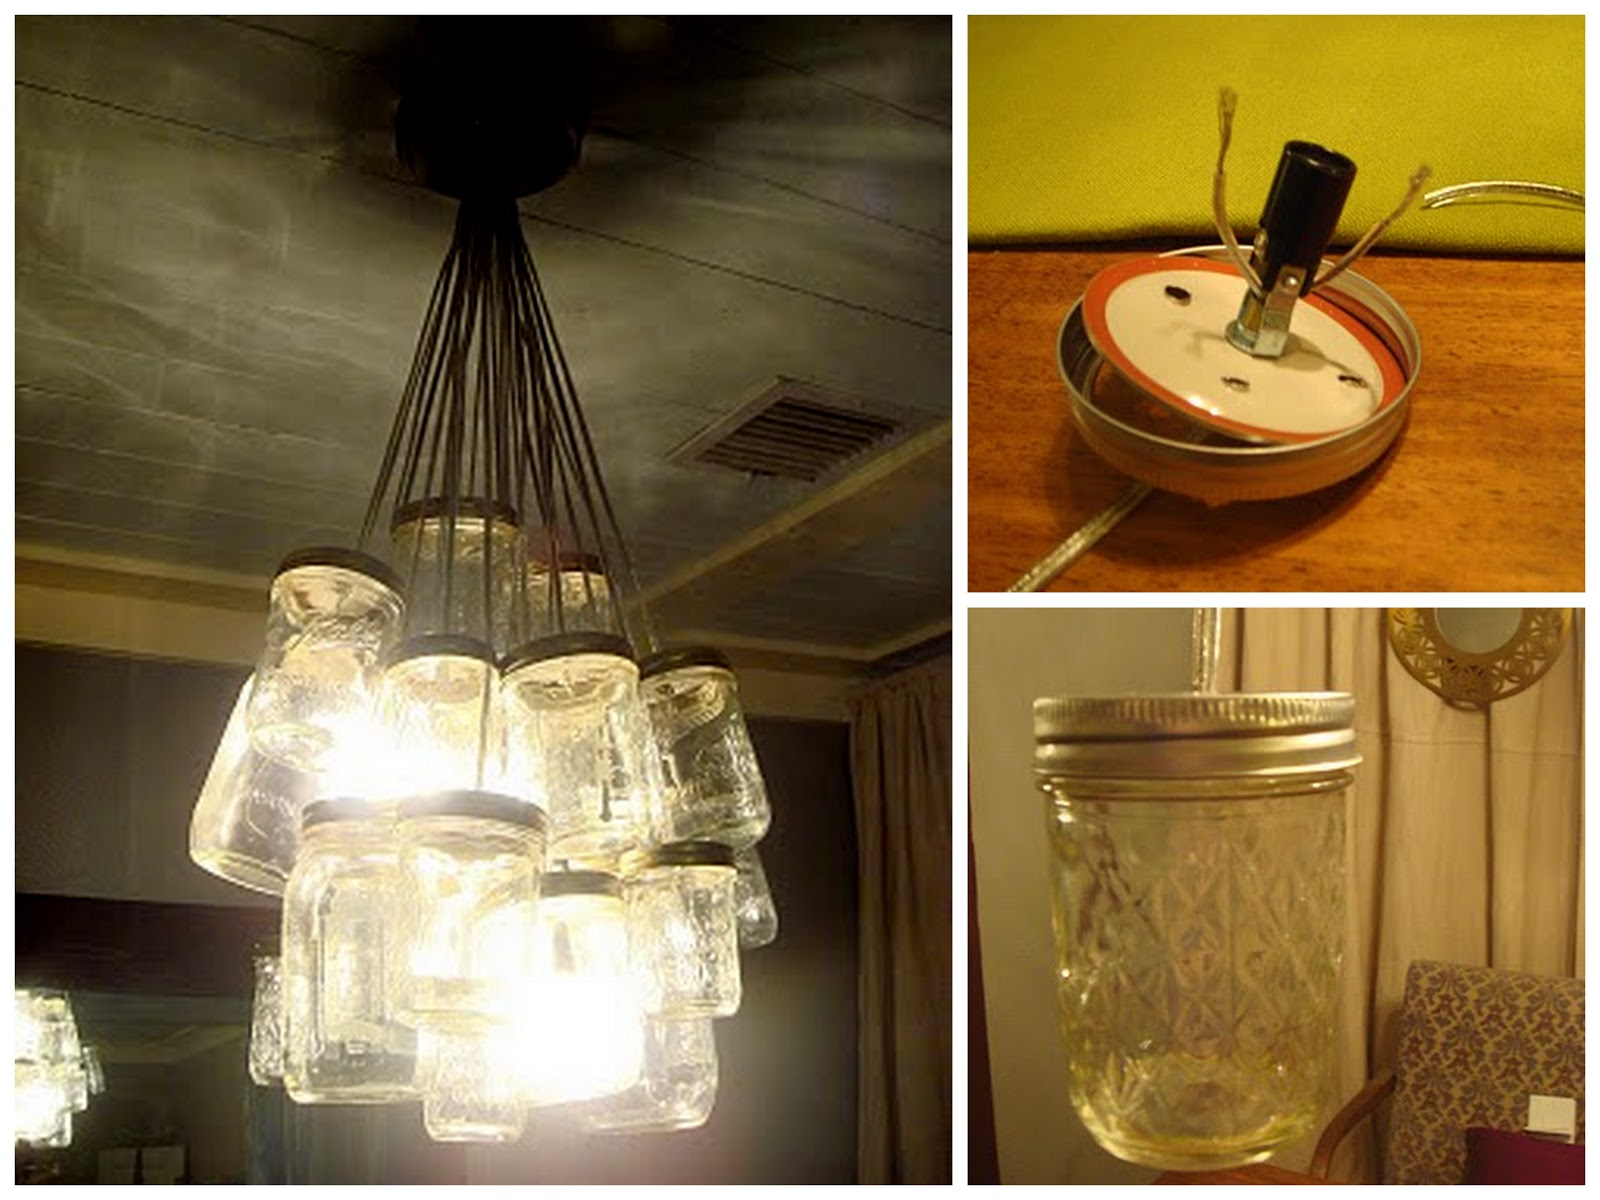 Nine red how to mason jar chandelier tutorial i love it they did such a great job on this ive seen quite a few mason jar lights but mostly singles or in groups of 3 4 this chandelier takes it to arubaitofo Image collections